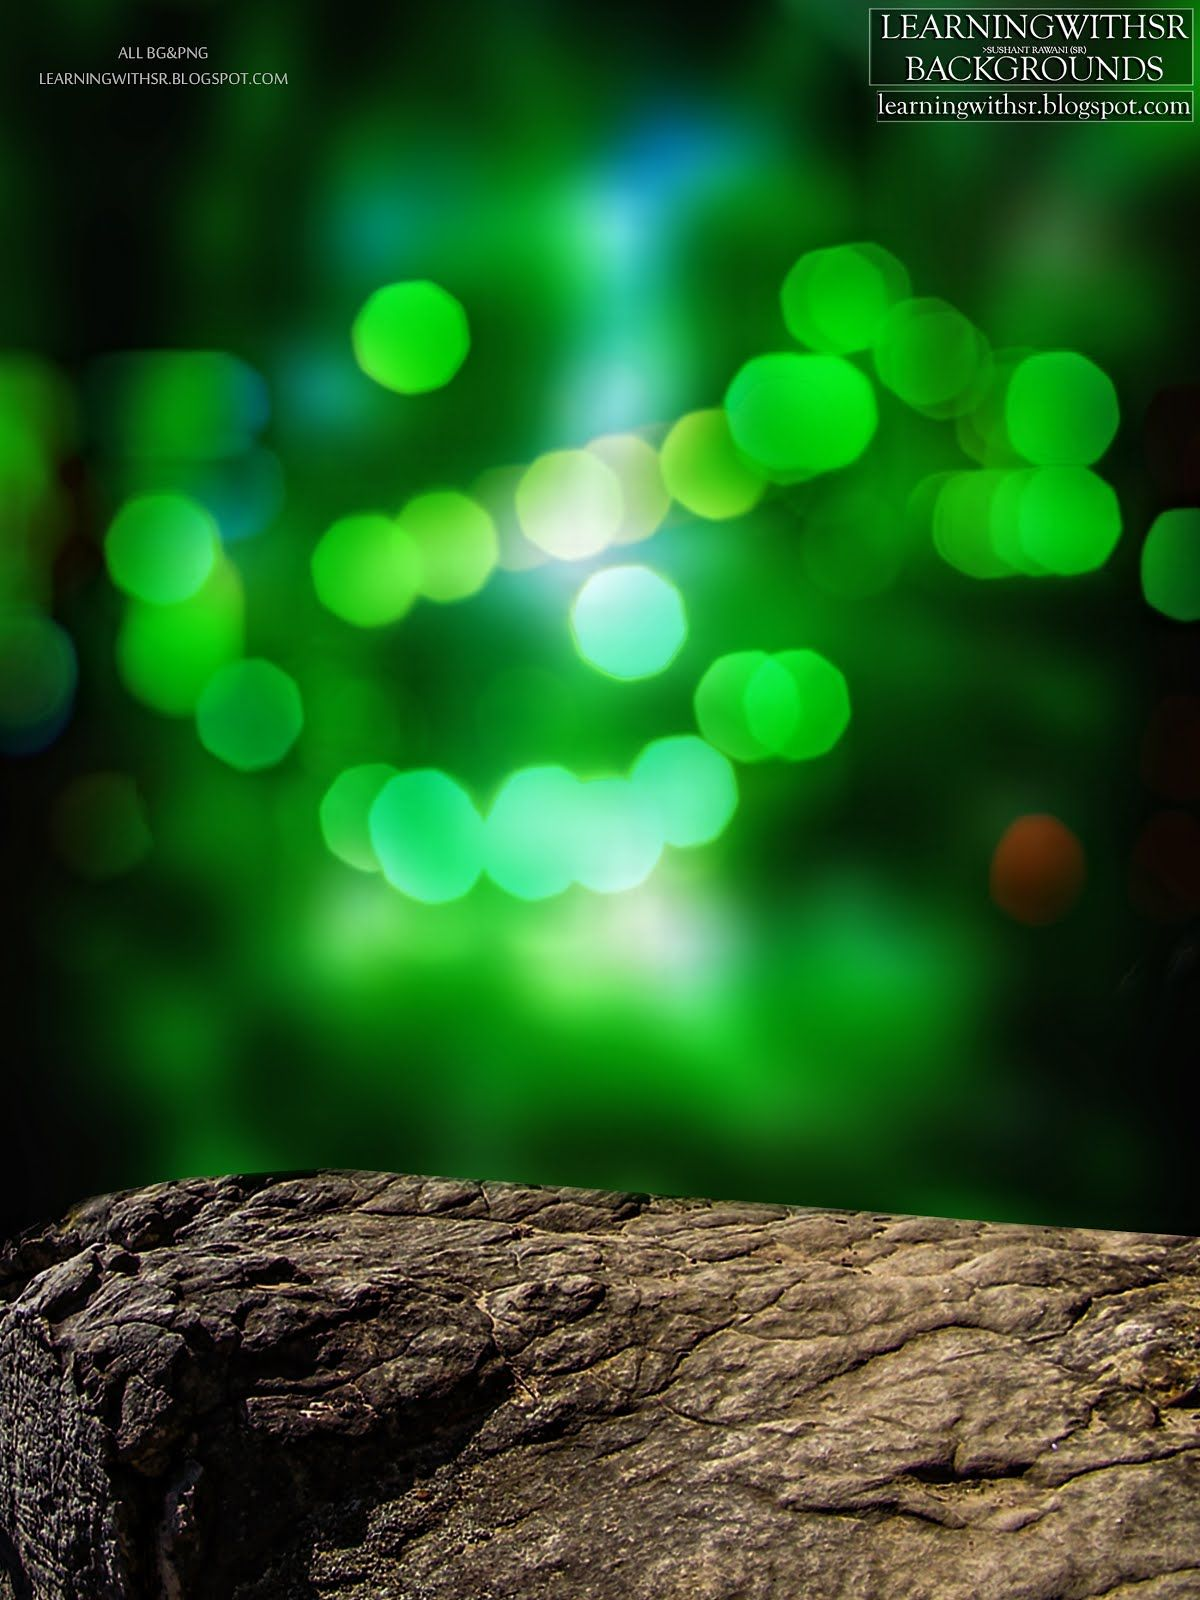 Cb Background Hd Download New Brand New Hd Cb Backgrounds By Learningwithsr 2018 Fresh A Blur Photo Background Background Images Hd Blur Background Photography